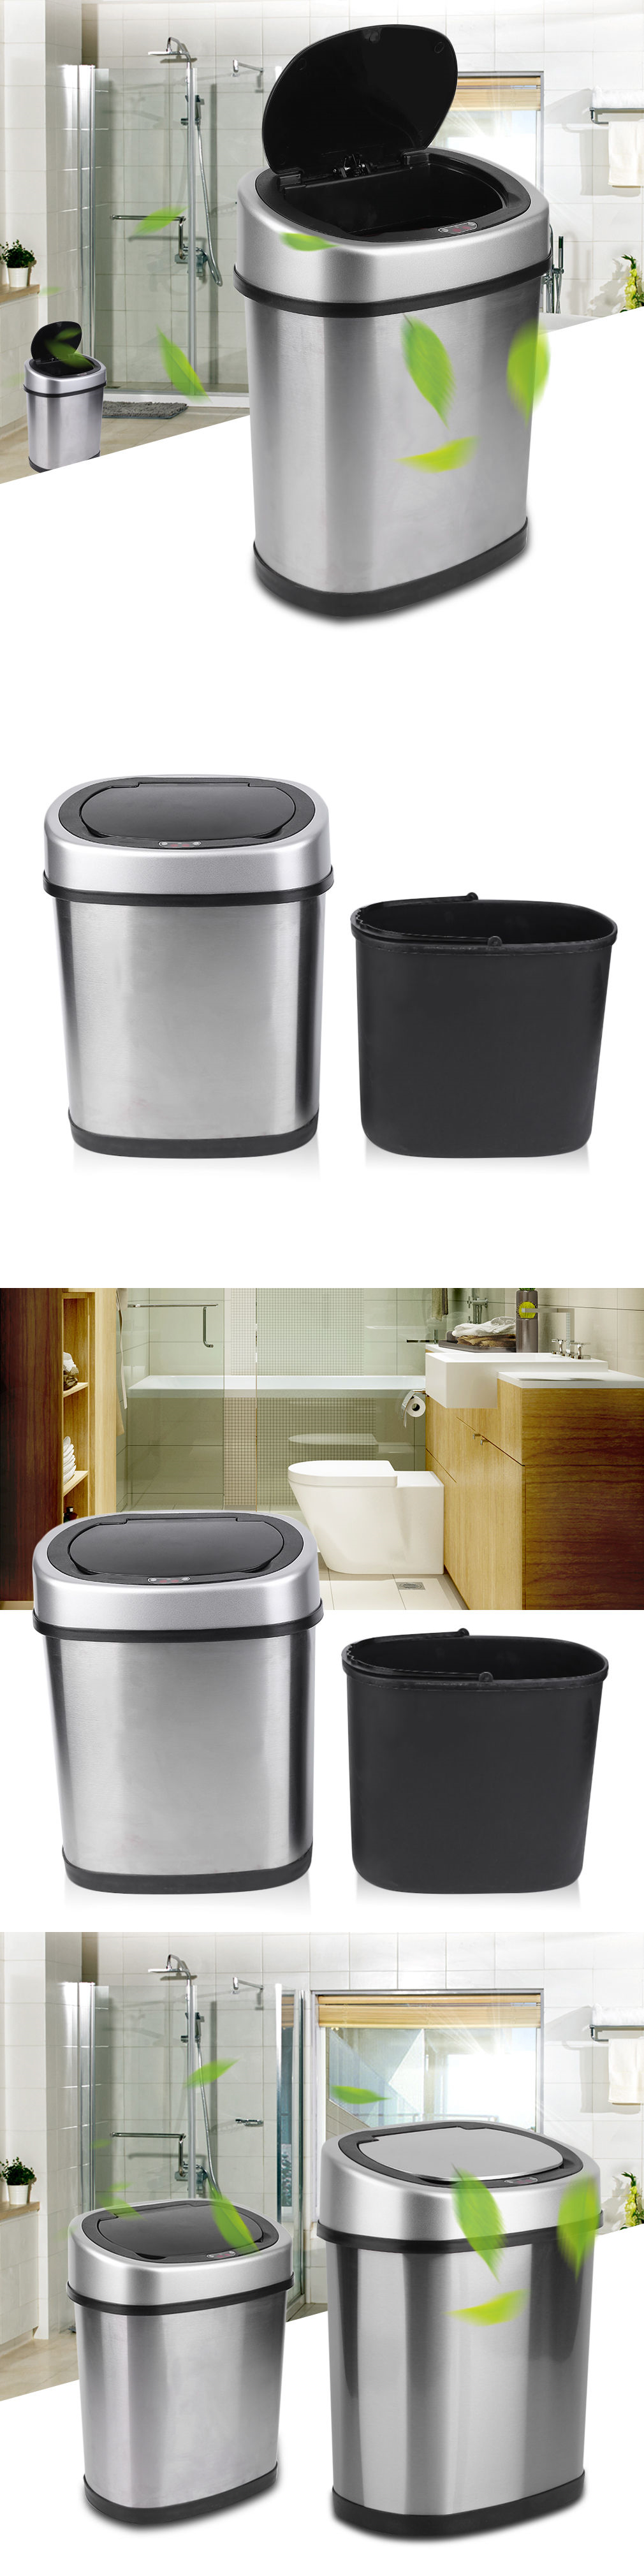 Trash Cans And Wastebaskets Prepossessing Trash Cans And Wastebaskets 20608 New 12L Touchfree Motion Sensor Inspiration Design